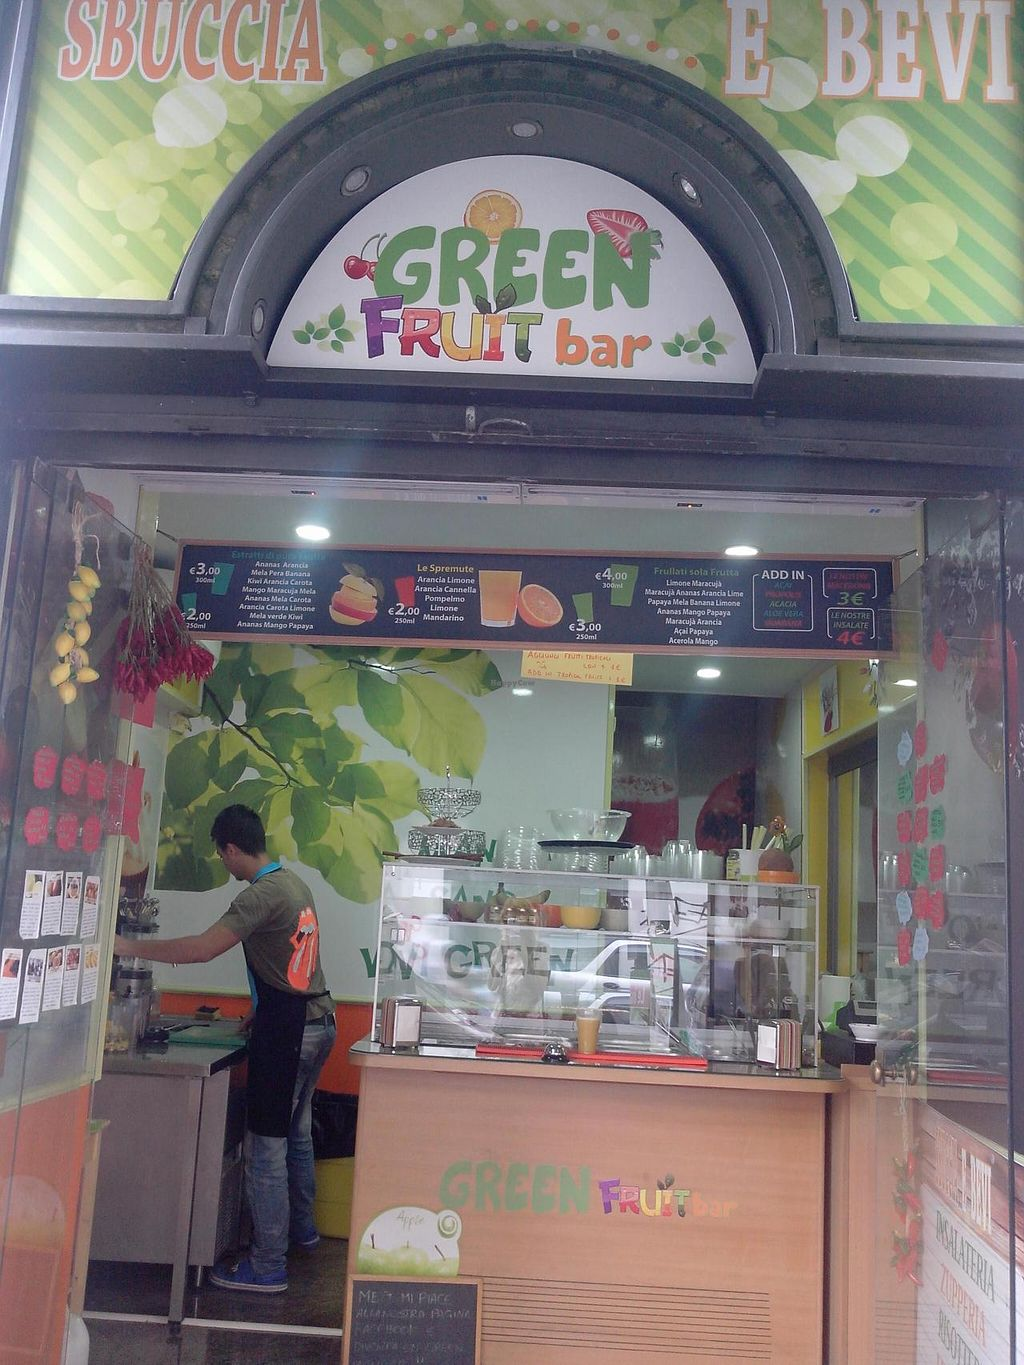 """Photo of Sbuccia e Bevi - Green Fruit Bar  by <a href=""""/members/profile/Lu73"""">Lu73</a> <br/>from Outside <br/> September 26, 2014  - <a href='/contact/abuse/image/51427/81120'>Report</a>"""